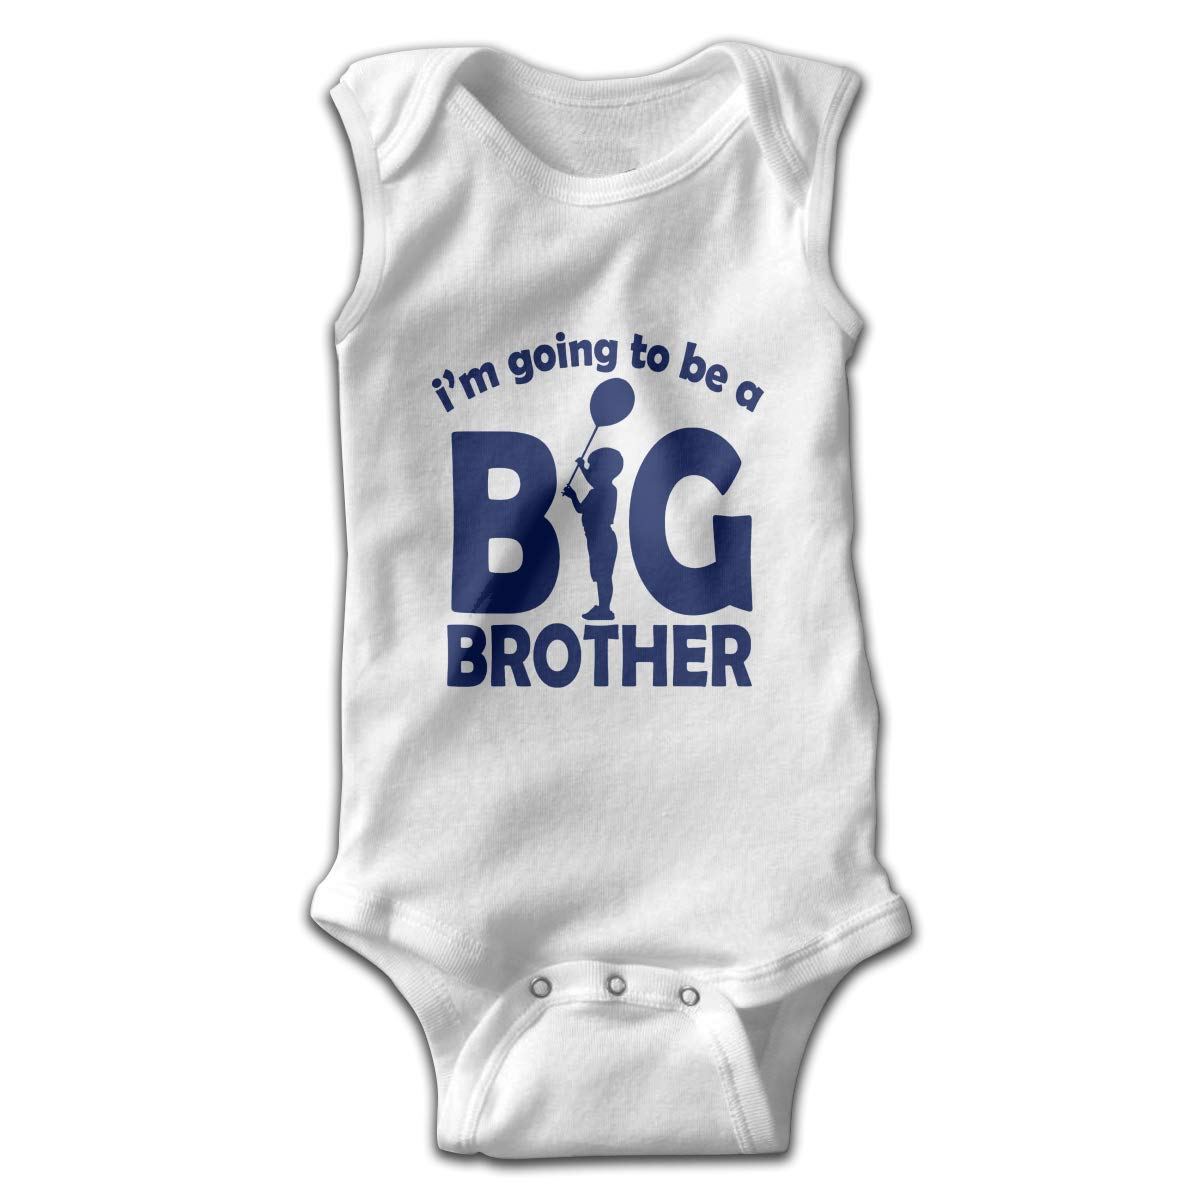 Toddler Baby Girls Rompers Sleeveless Cotton Jumpsuit,Im Going to Be A Big Brother Bodysuit Autumn Pajamas